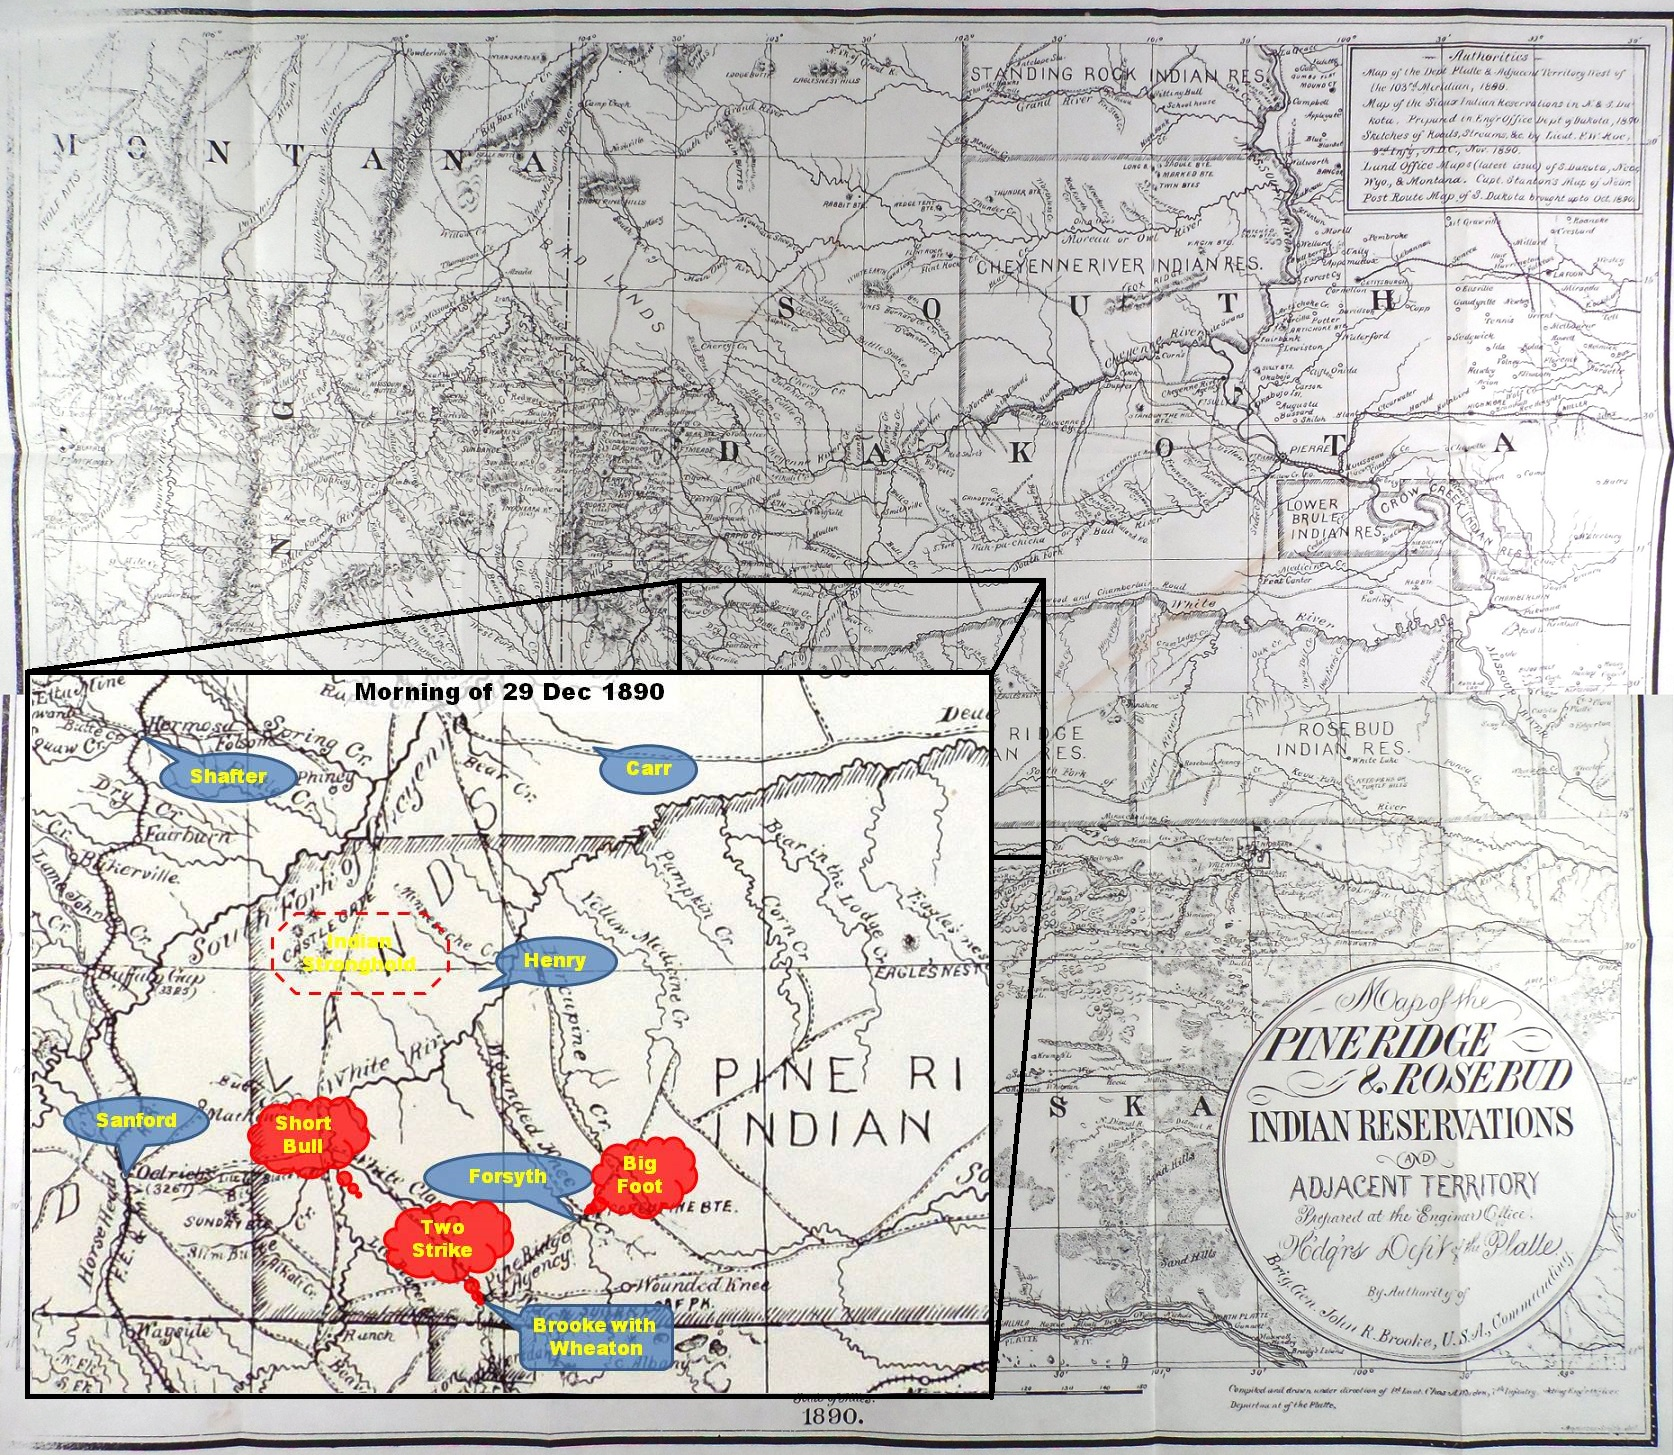 (Click to enlarge) Inset depicting approximate location of U.S. troops and Big Foot's band at noon on 28 Dec. 1890.